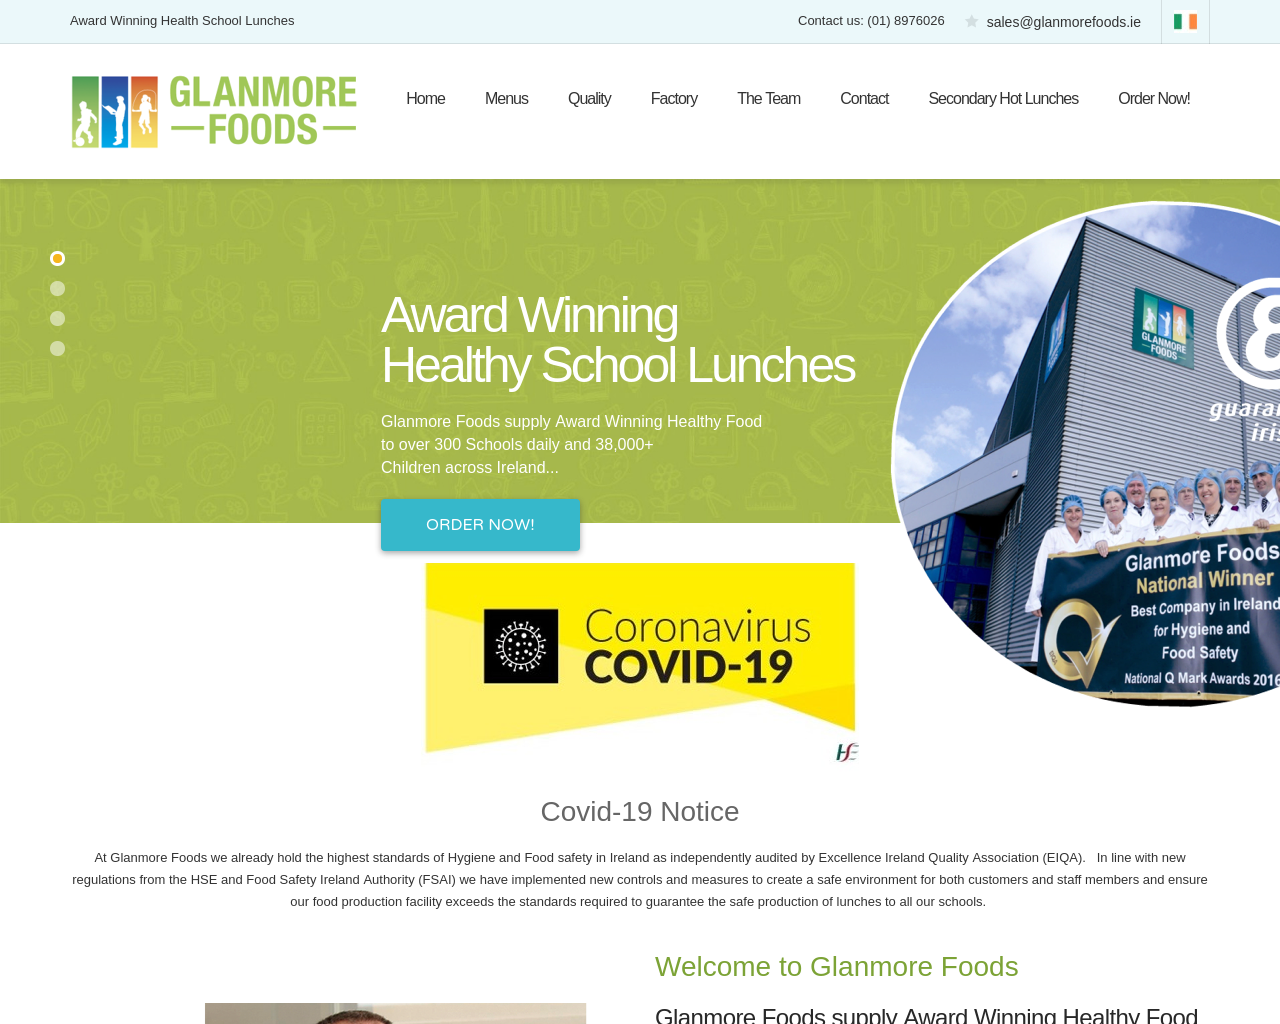 Glanmore Foods